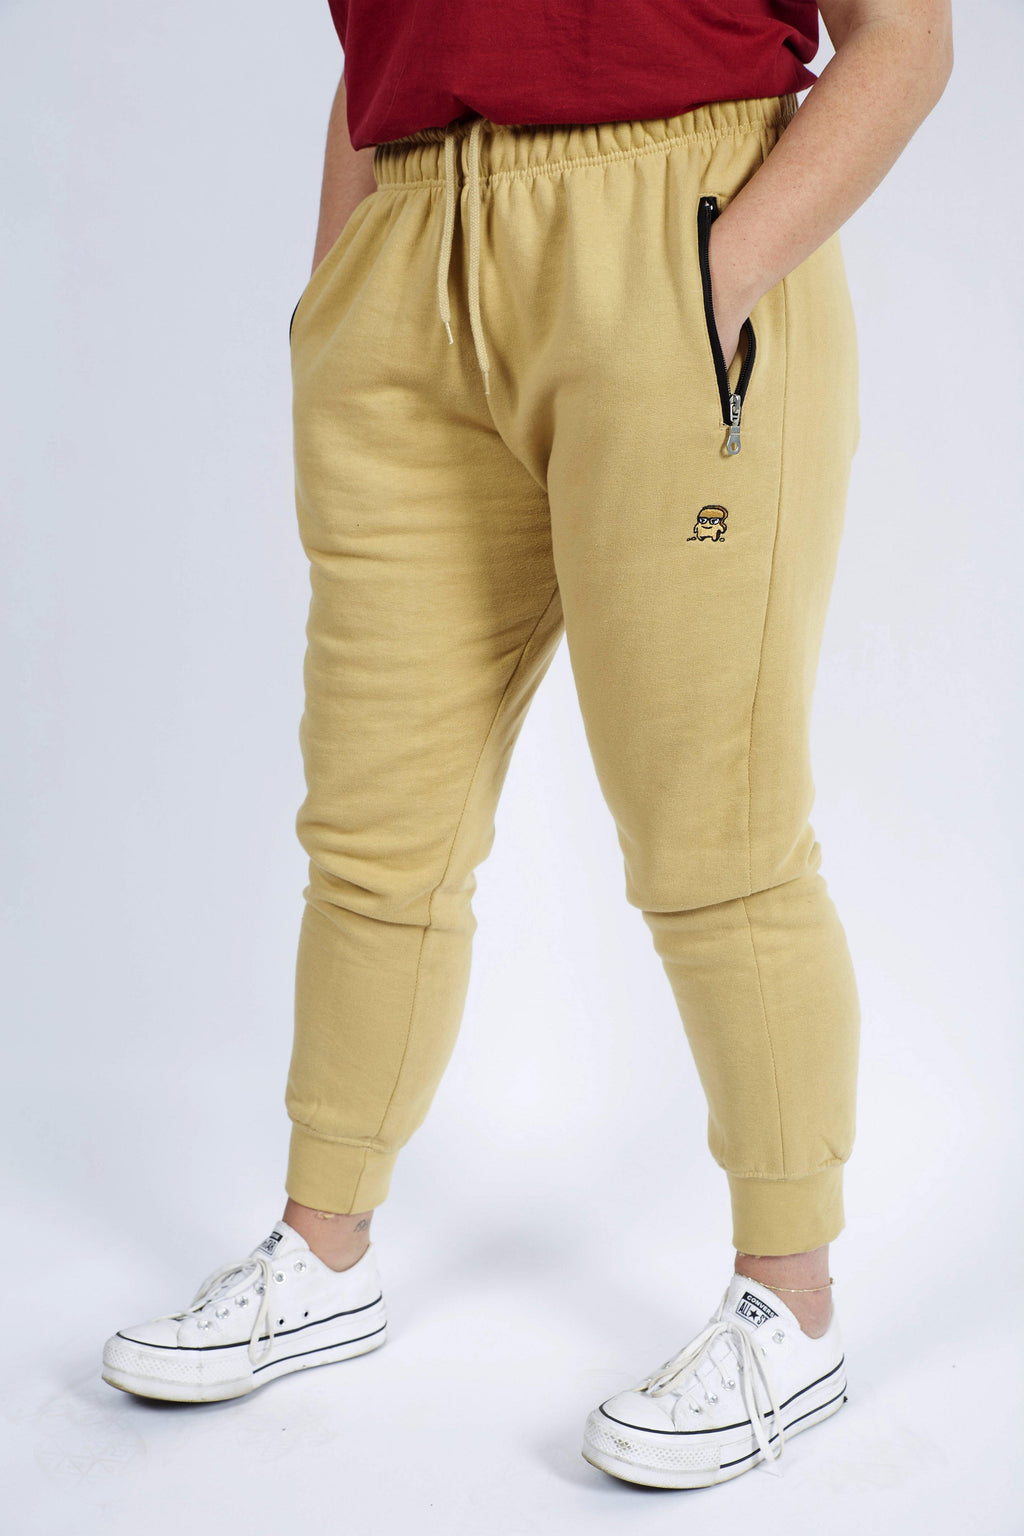 TAN CHOAST SWEATPANTS